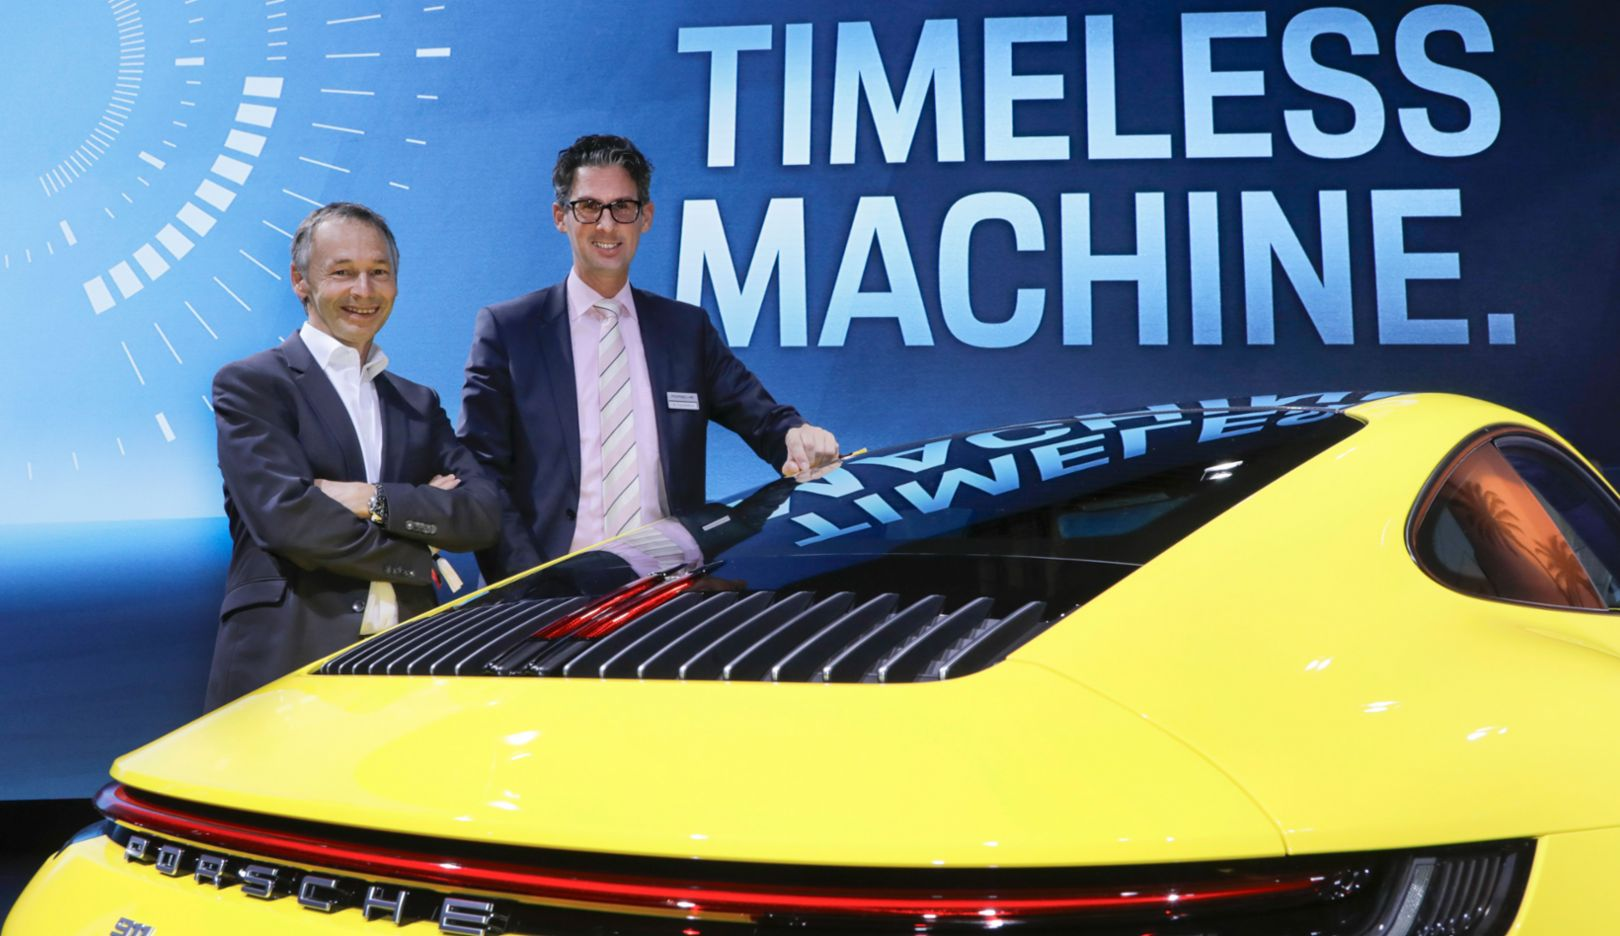 August Achleitner, Vice President Product Line 911 and 718, Frank-Steffen Walliser, Head of Motorsport and GT Road Vehicles, 911 Carrera 4S, 2018, Porsche AG